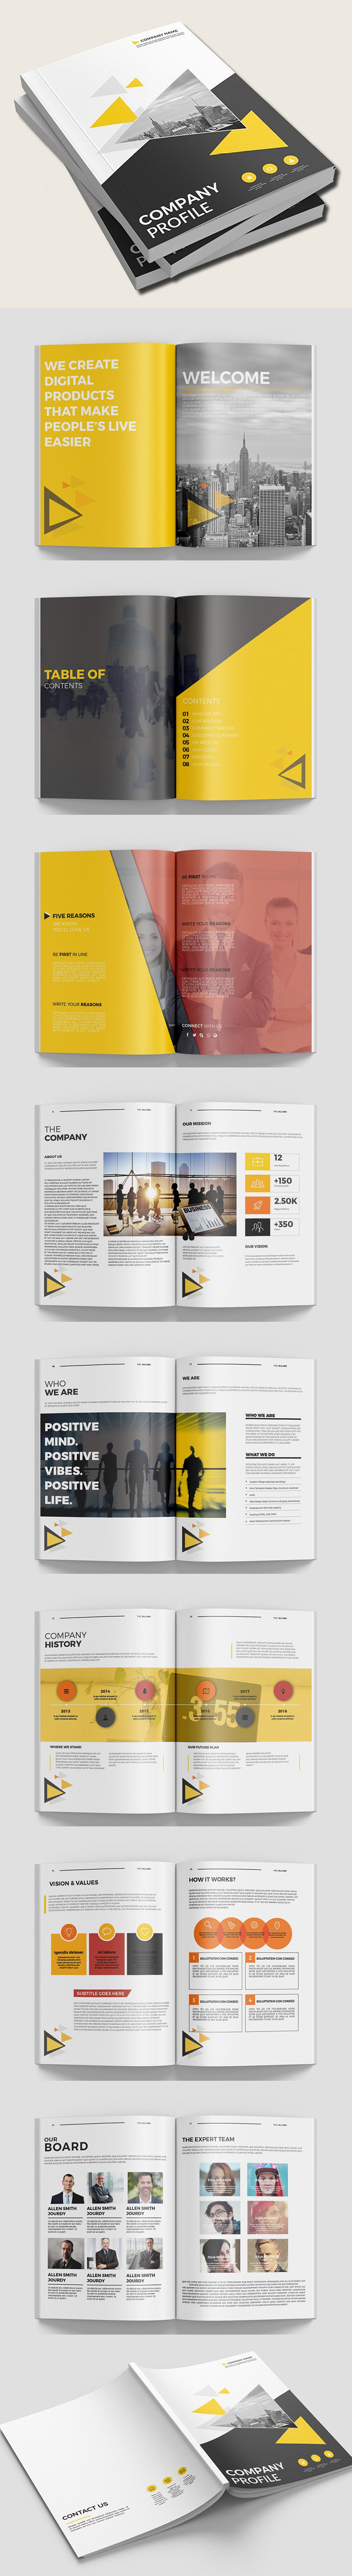 100 Professional Corporate Brochure Templates - 48